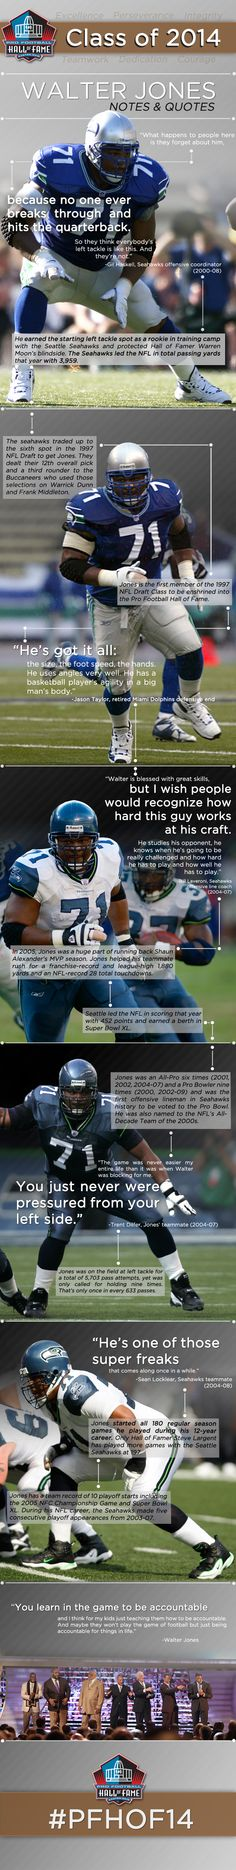 Notes & Quotes: Walter Jones from the Pro Football Hall of Fame.